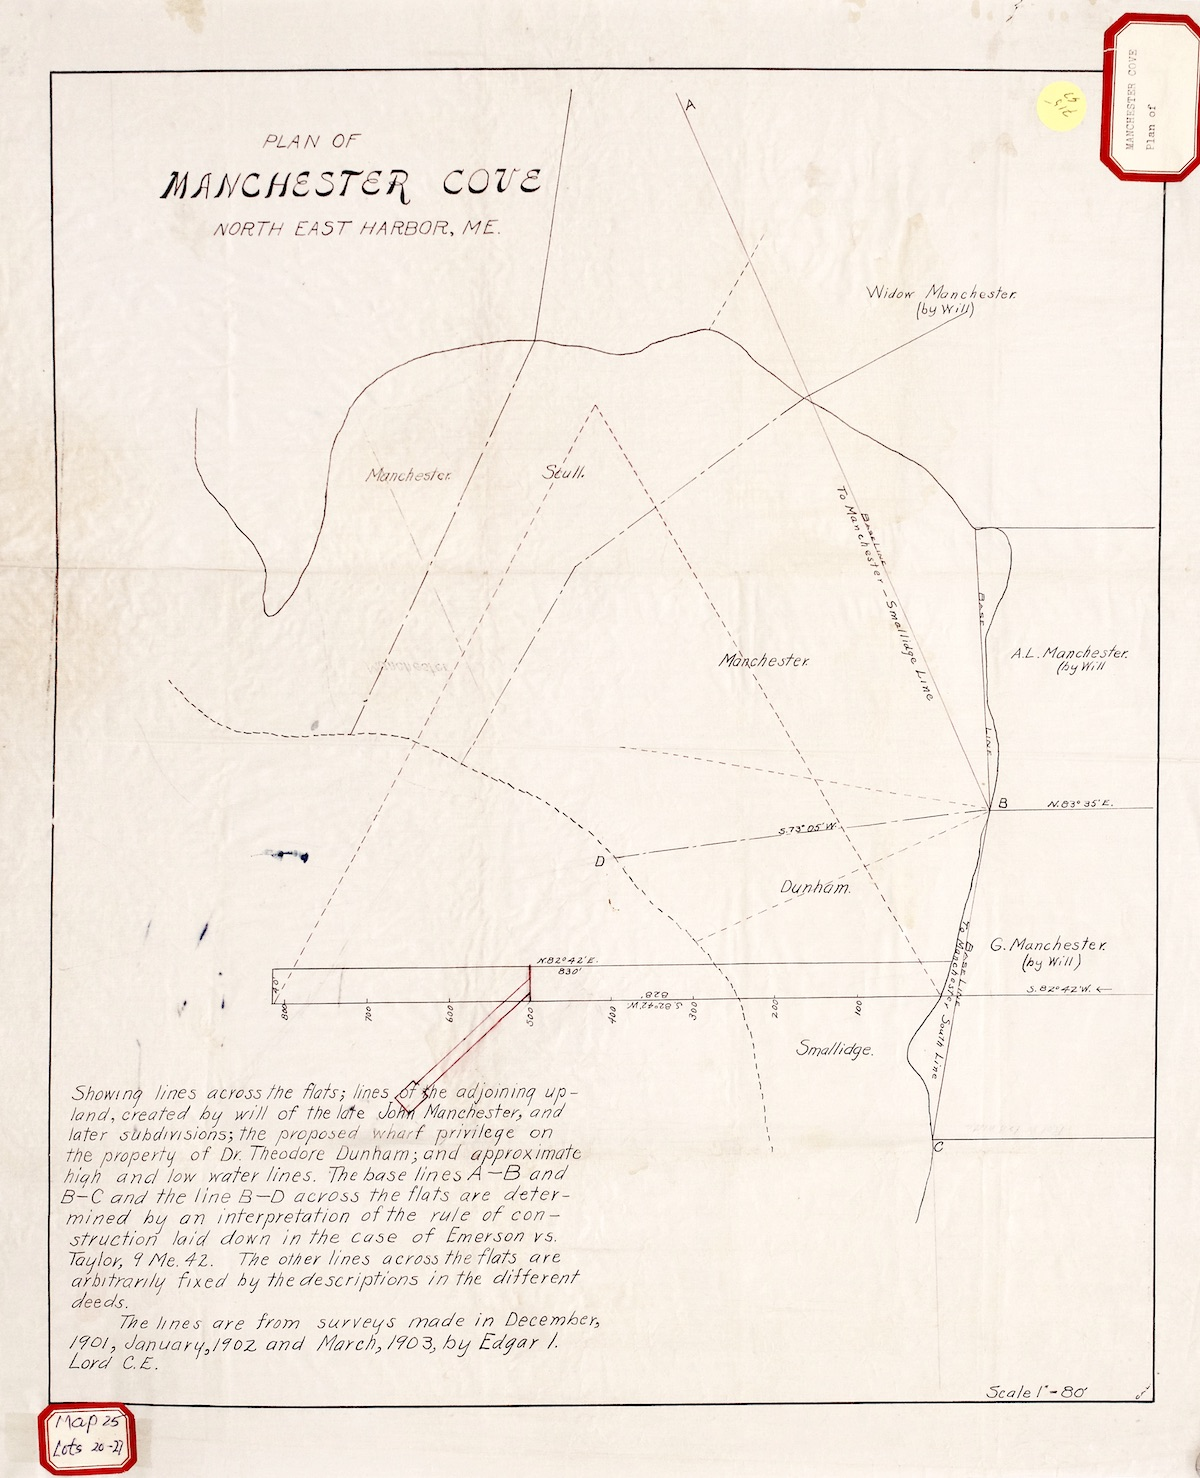 Plan of Manchester Cove